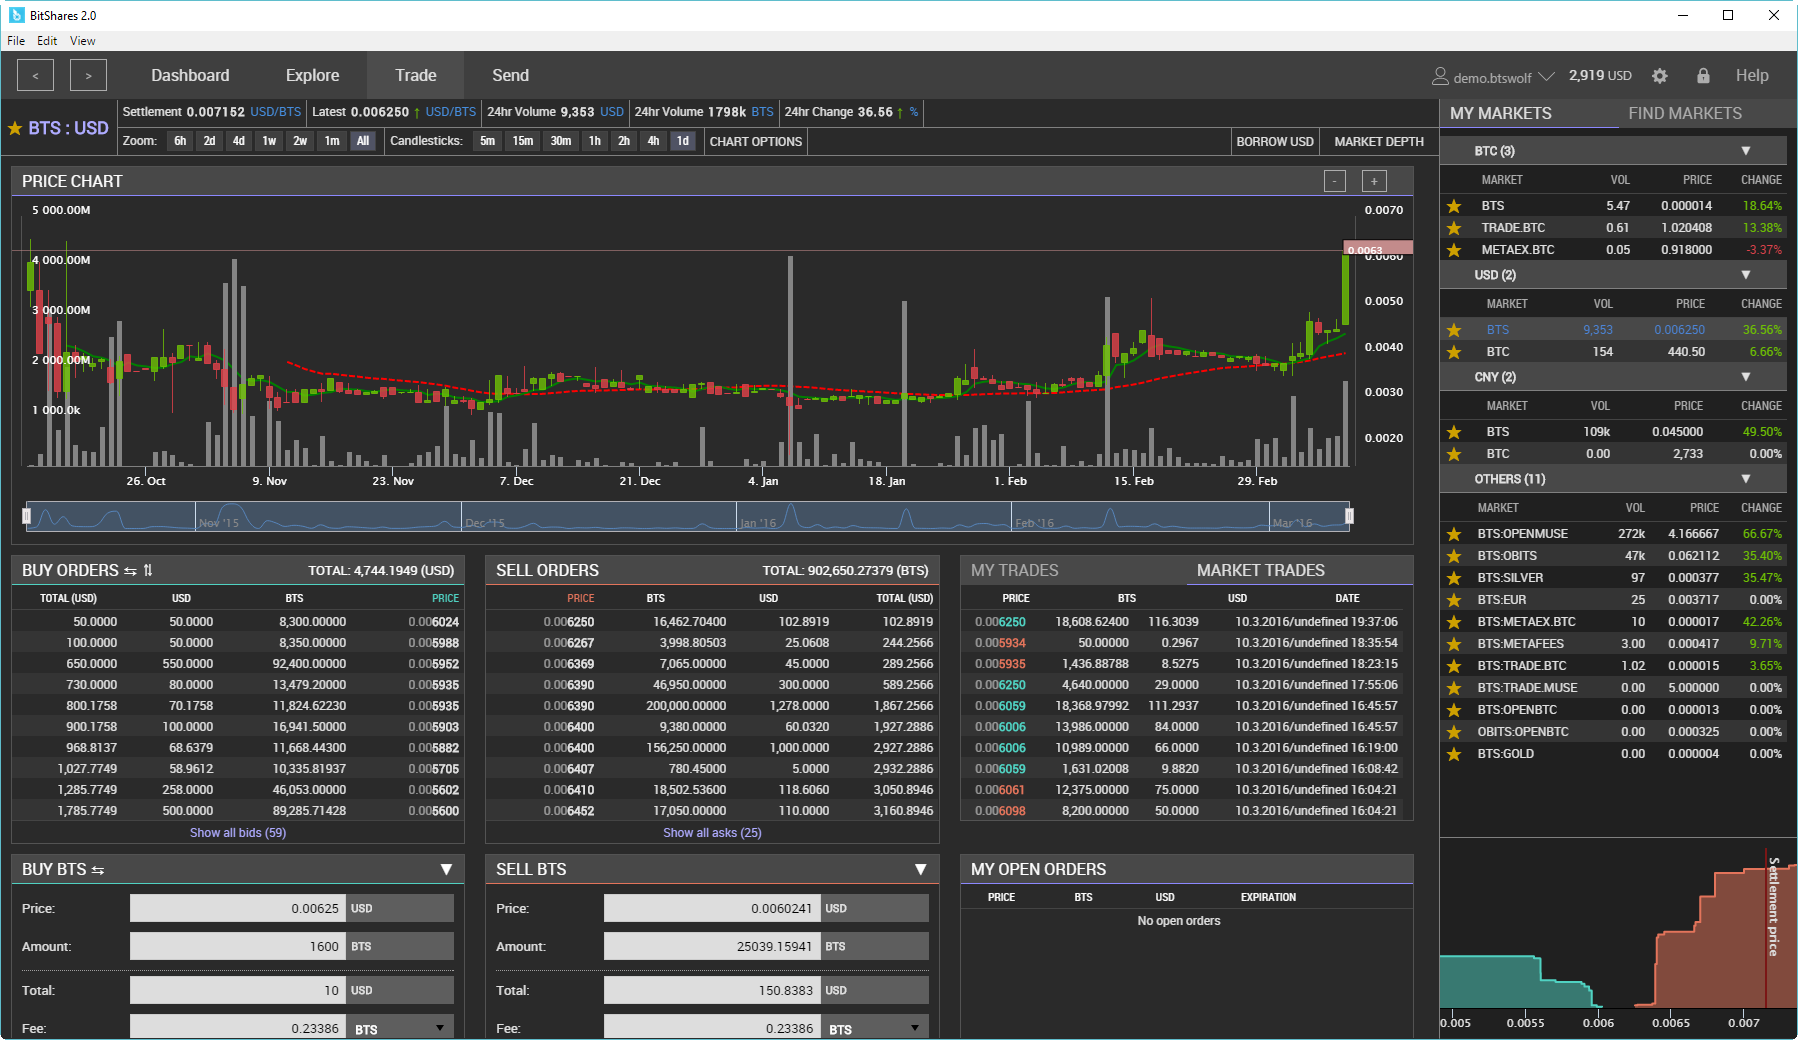 Trading Interface